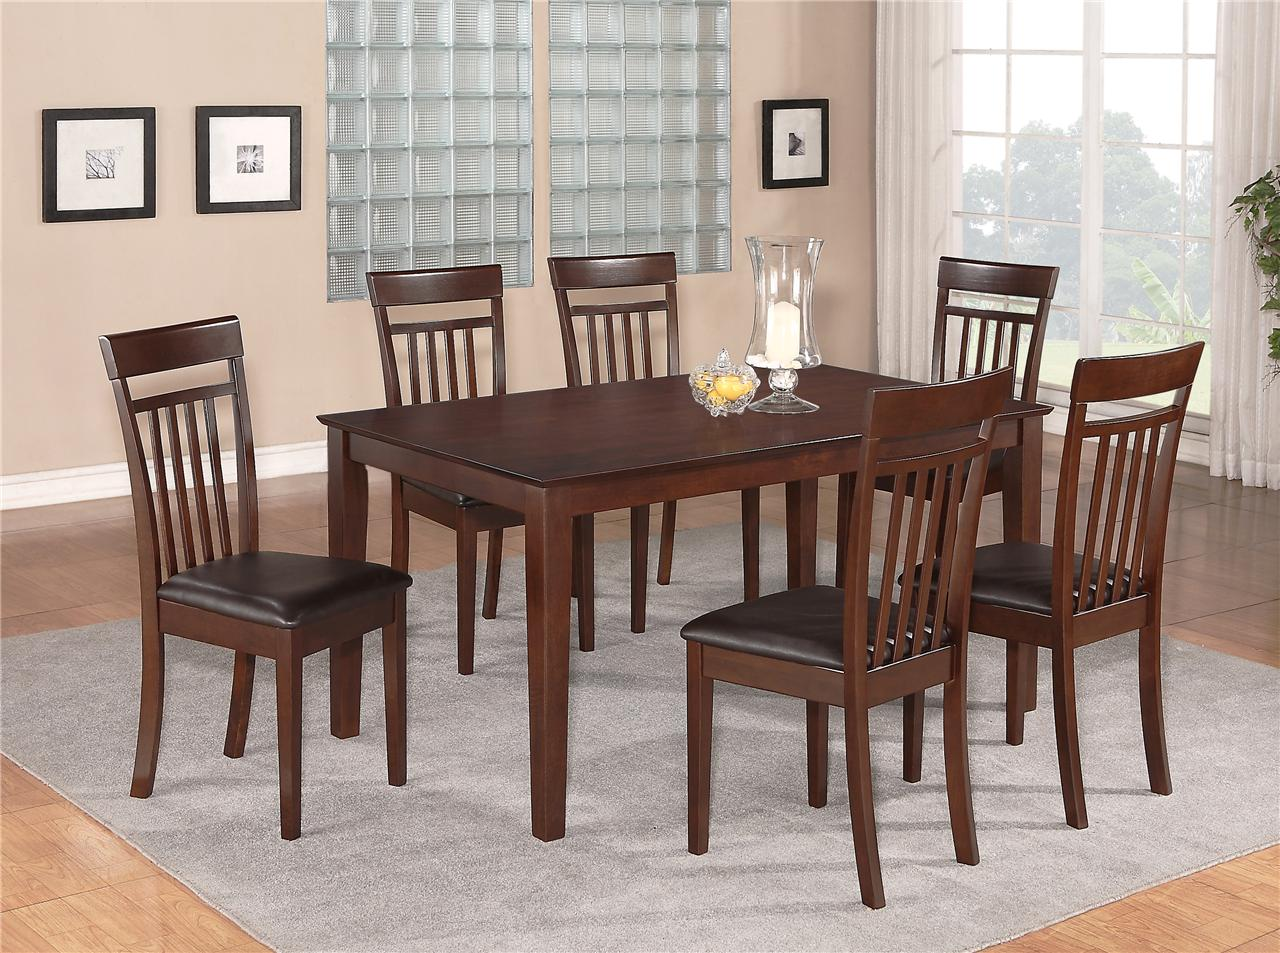 Vistit Our dinettestyle Store For Many More Dining Dinette Kitchen Table & Chairs